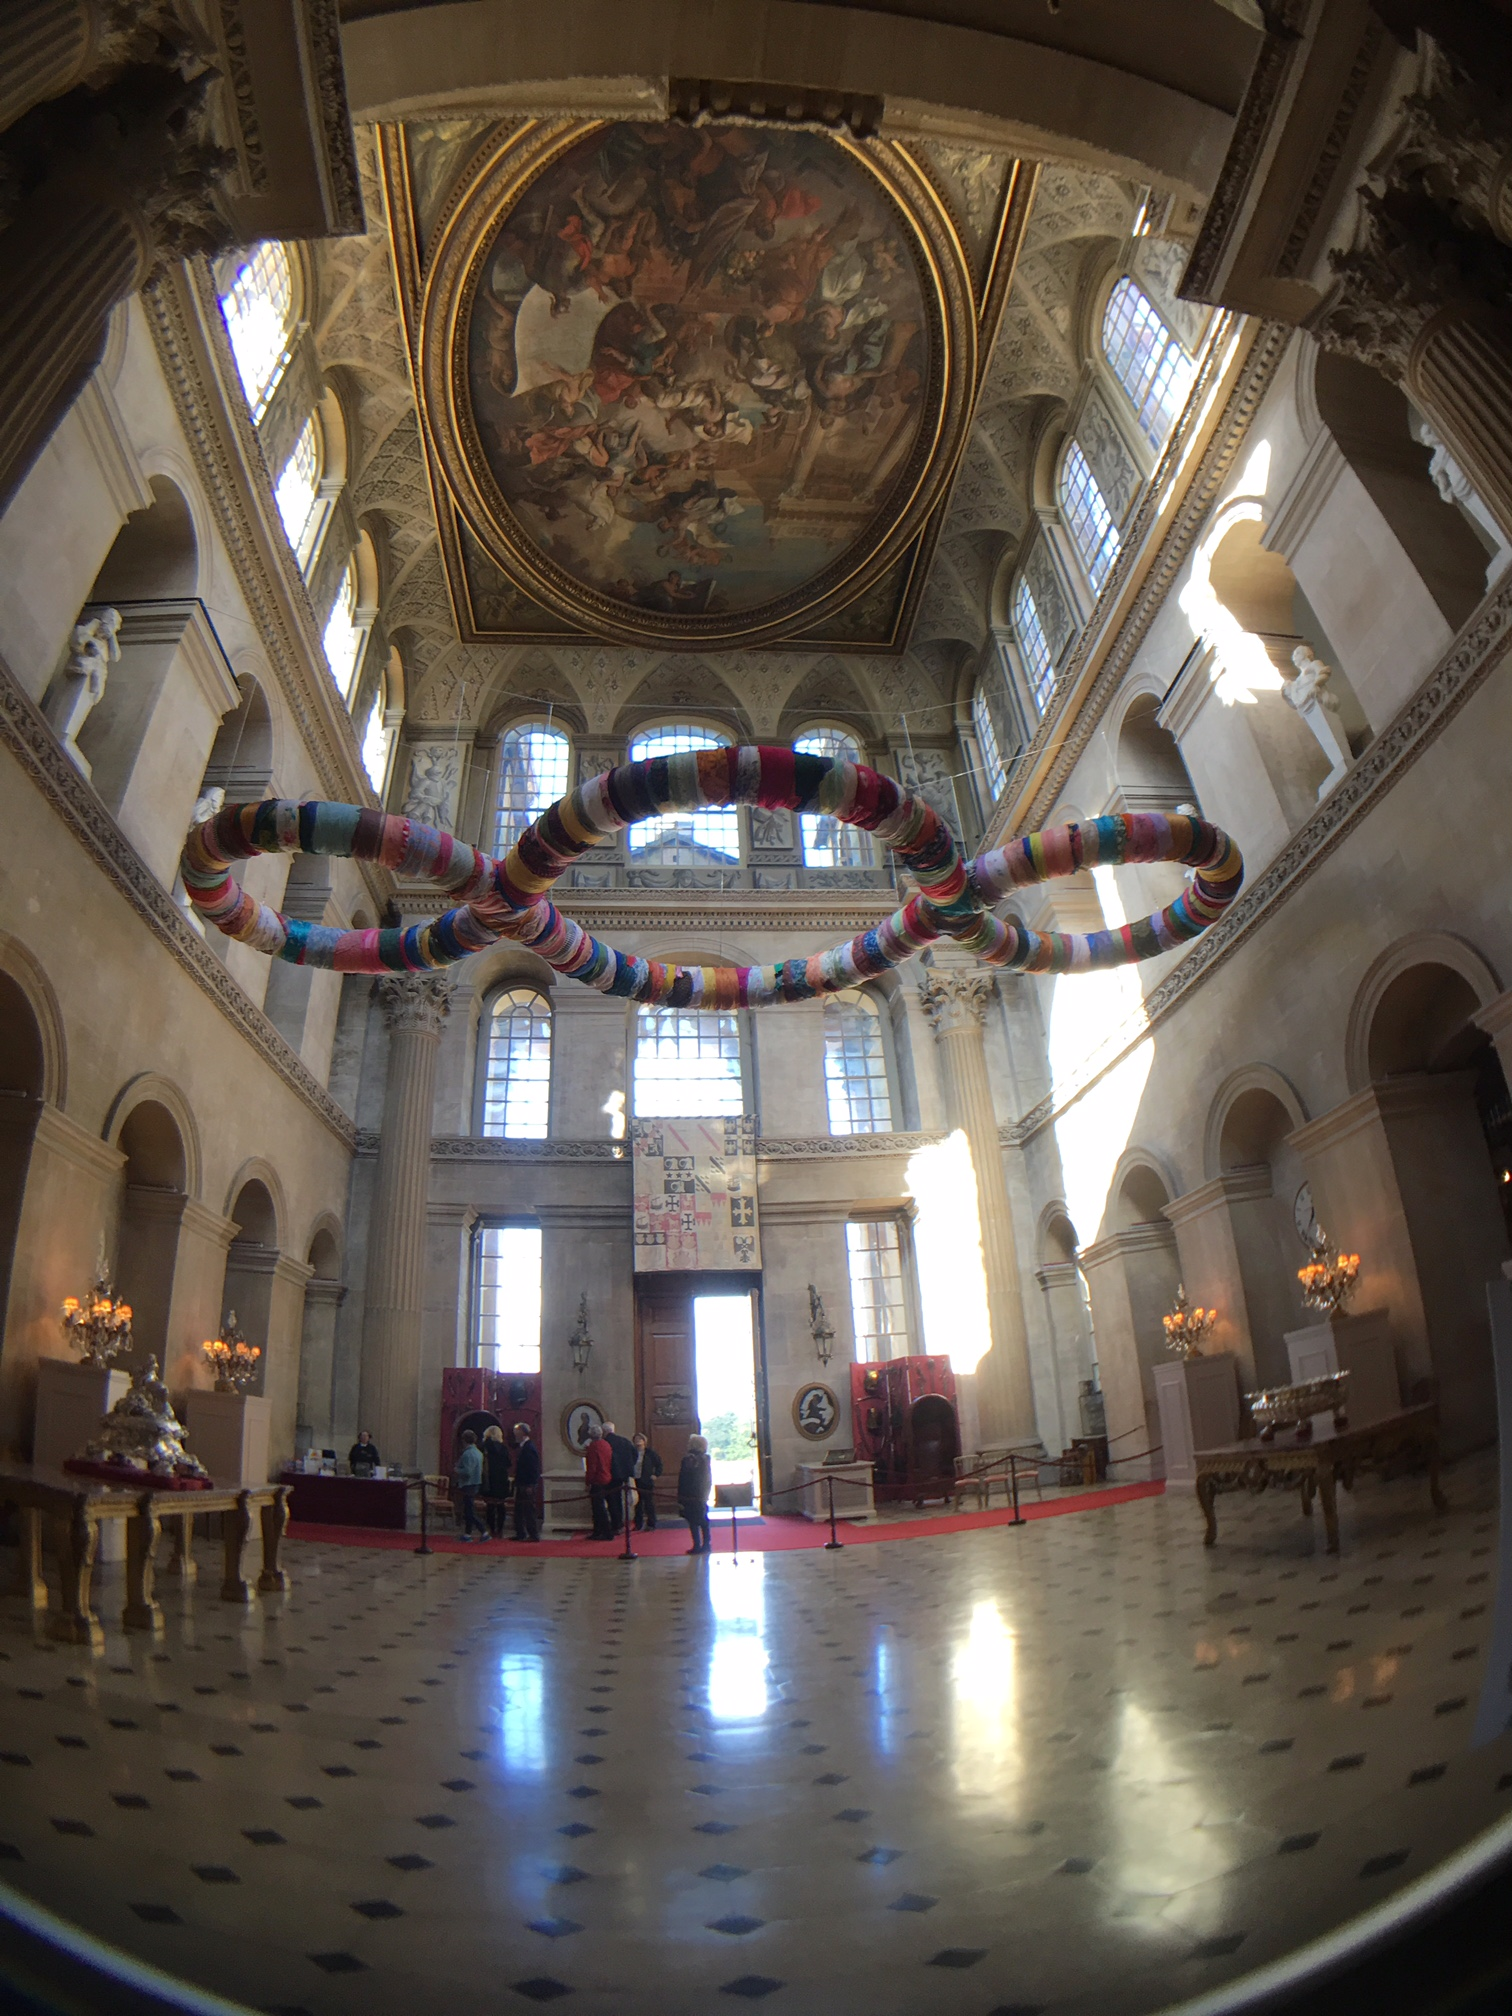 The interior of the foyer in Blenheim Palace